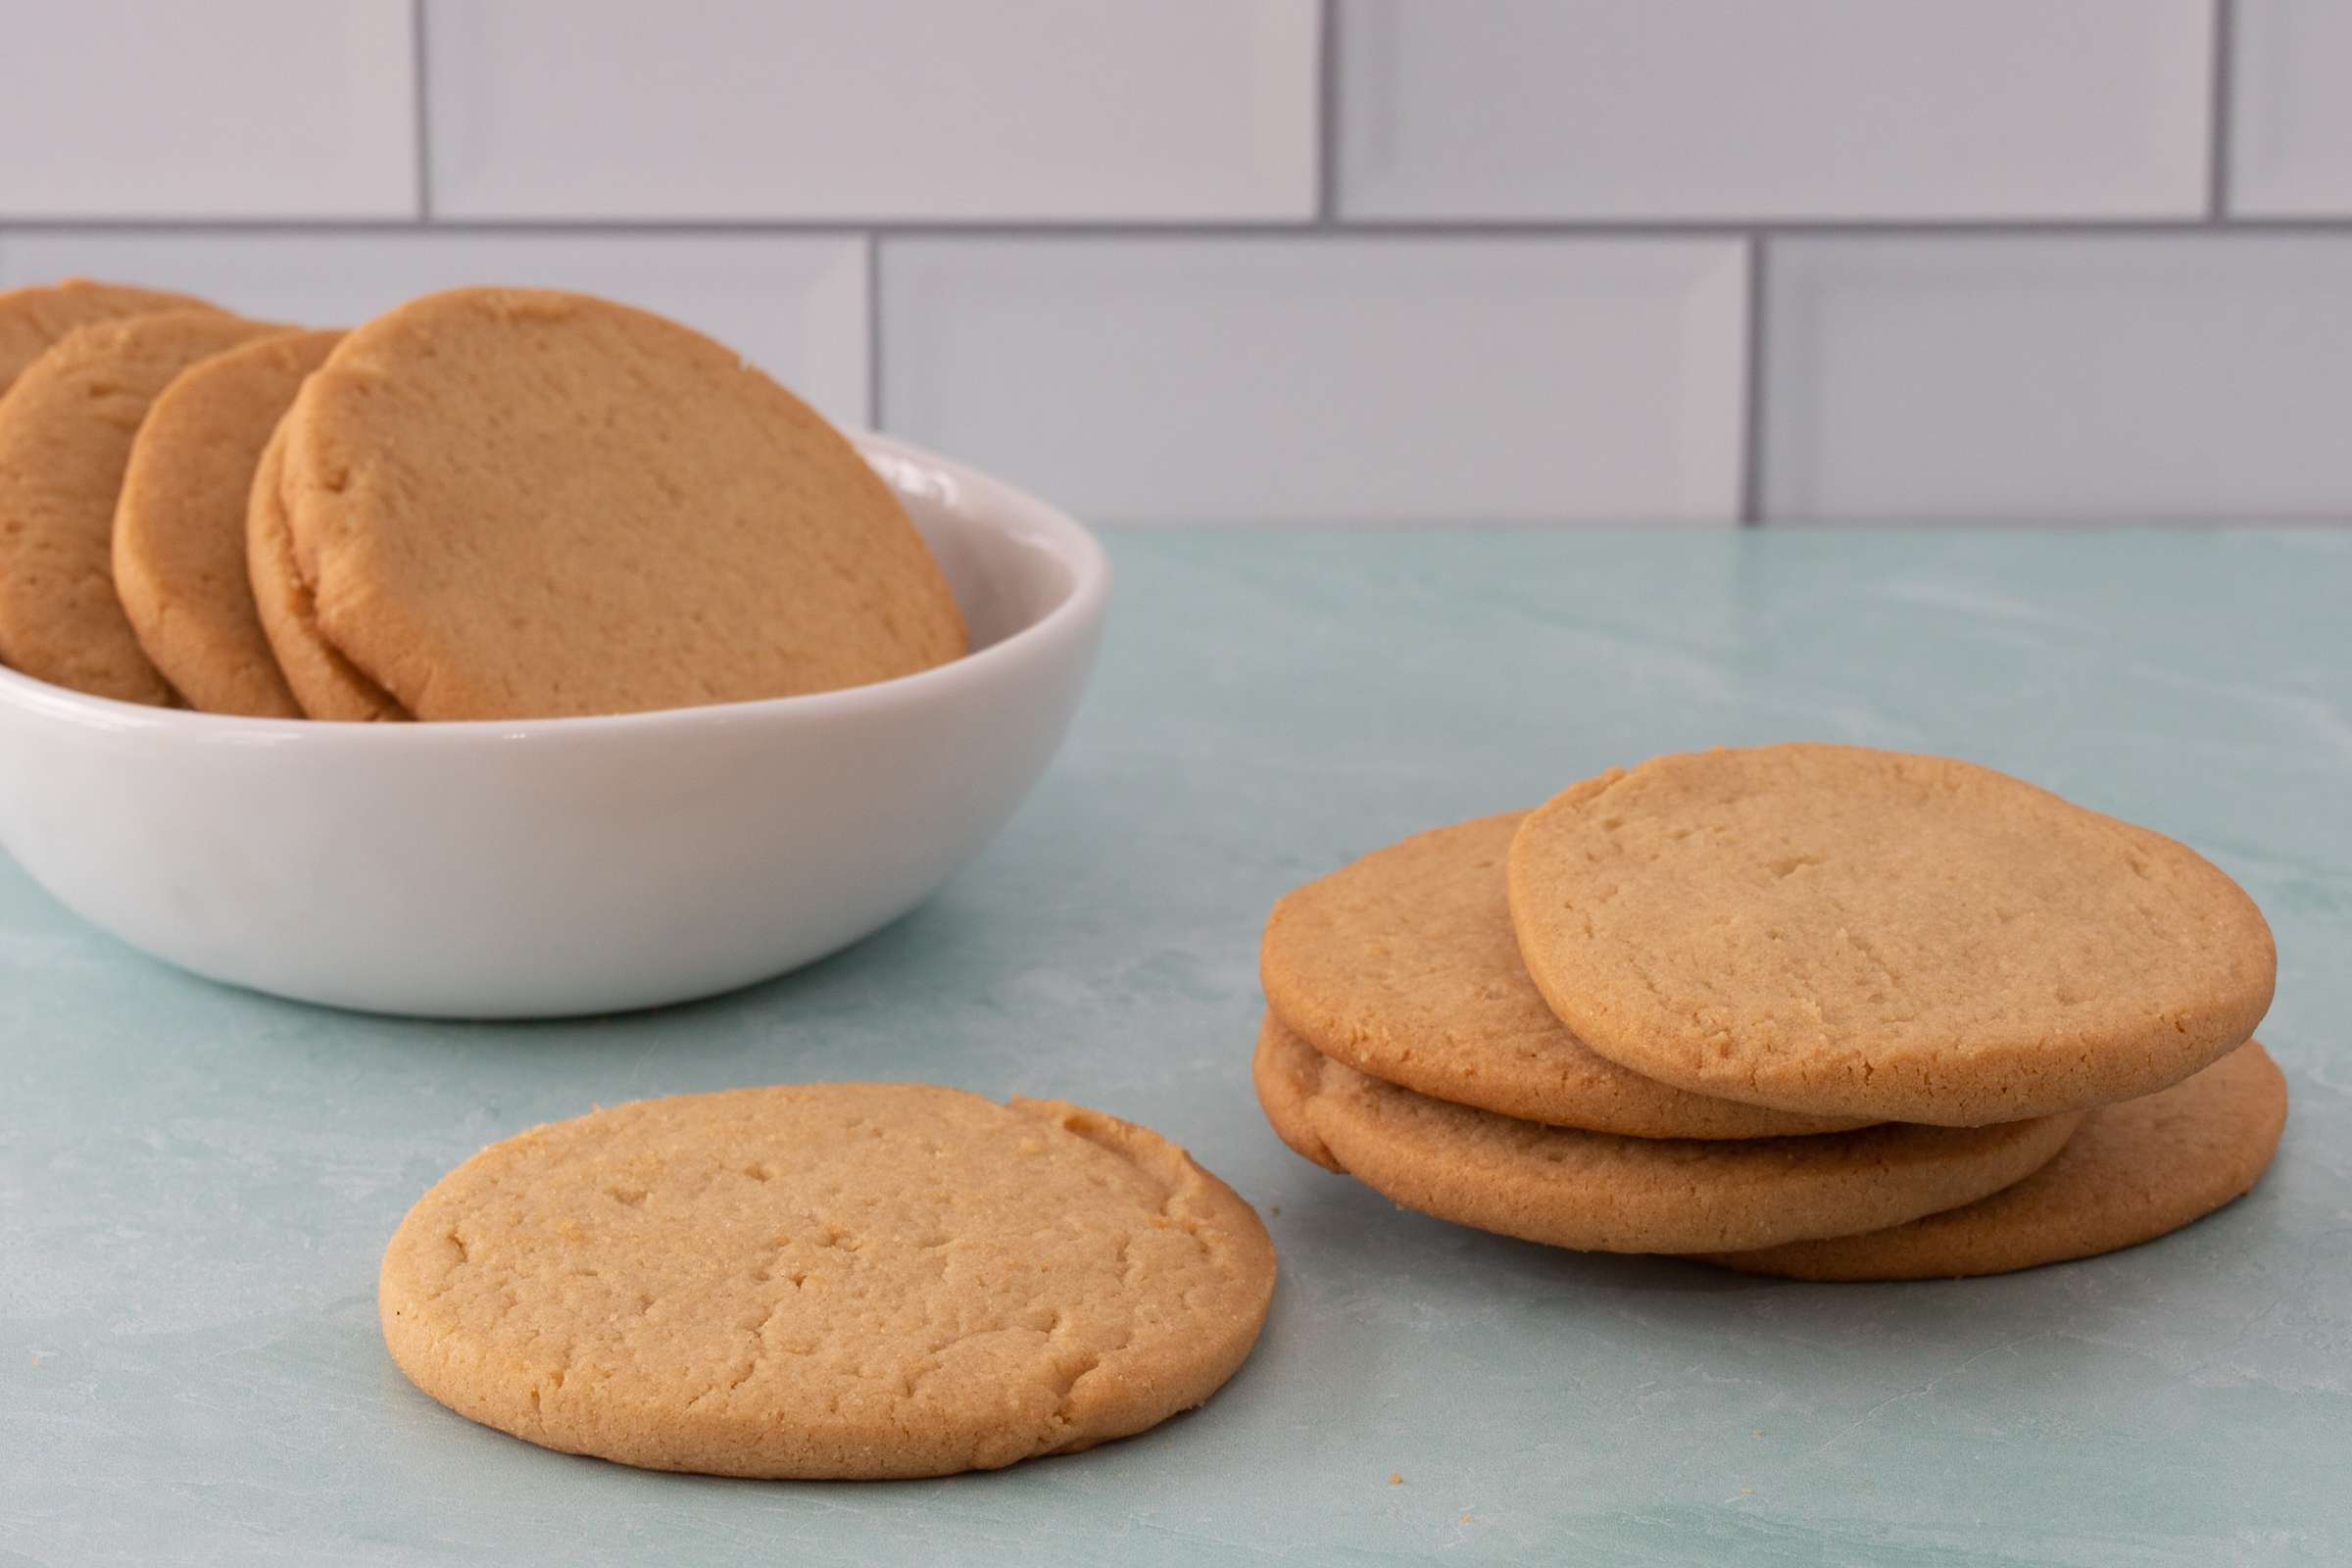 Peanut butter cookies in a bowl.